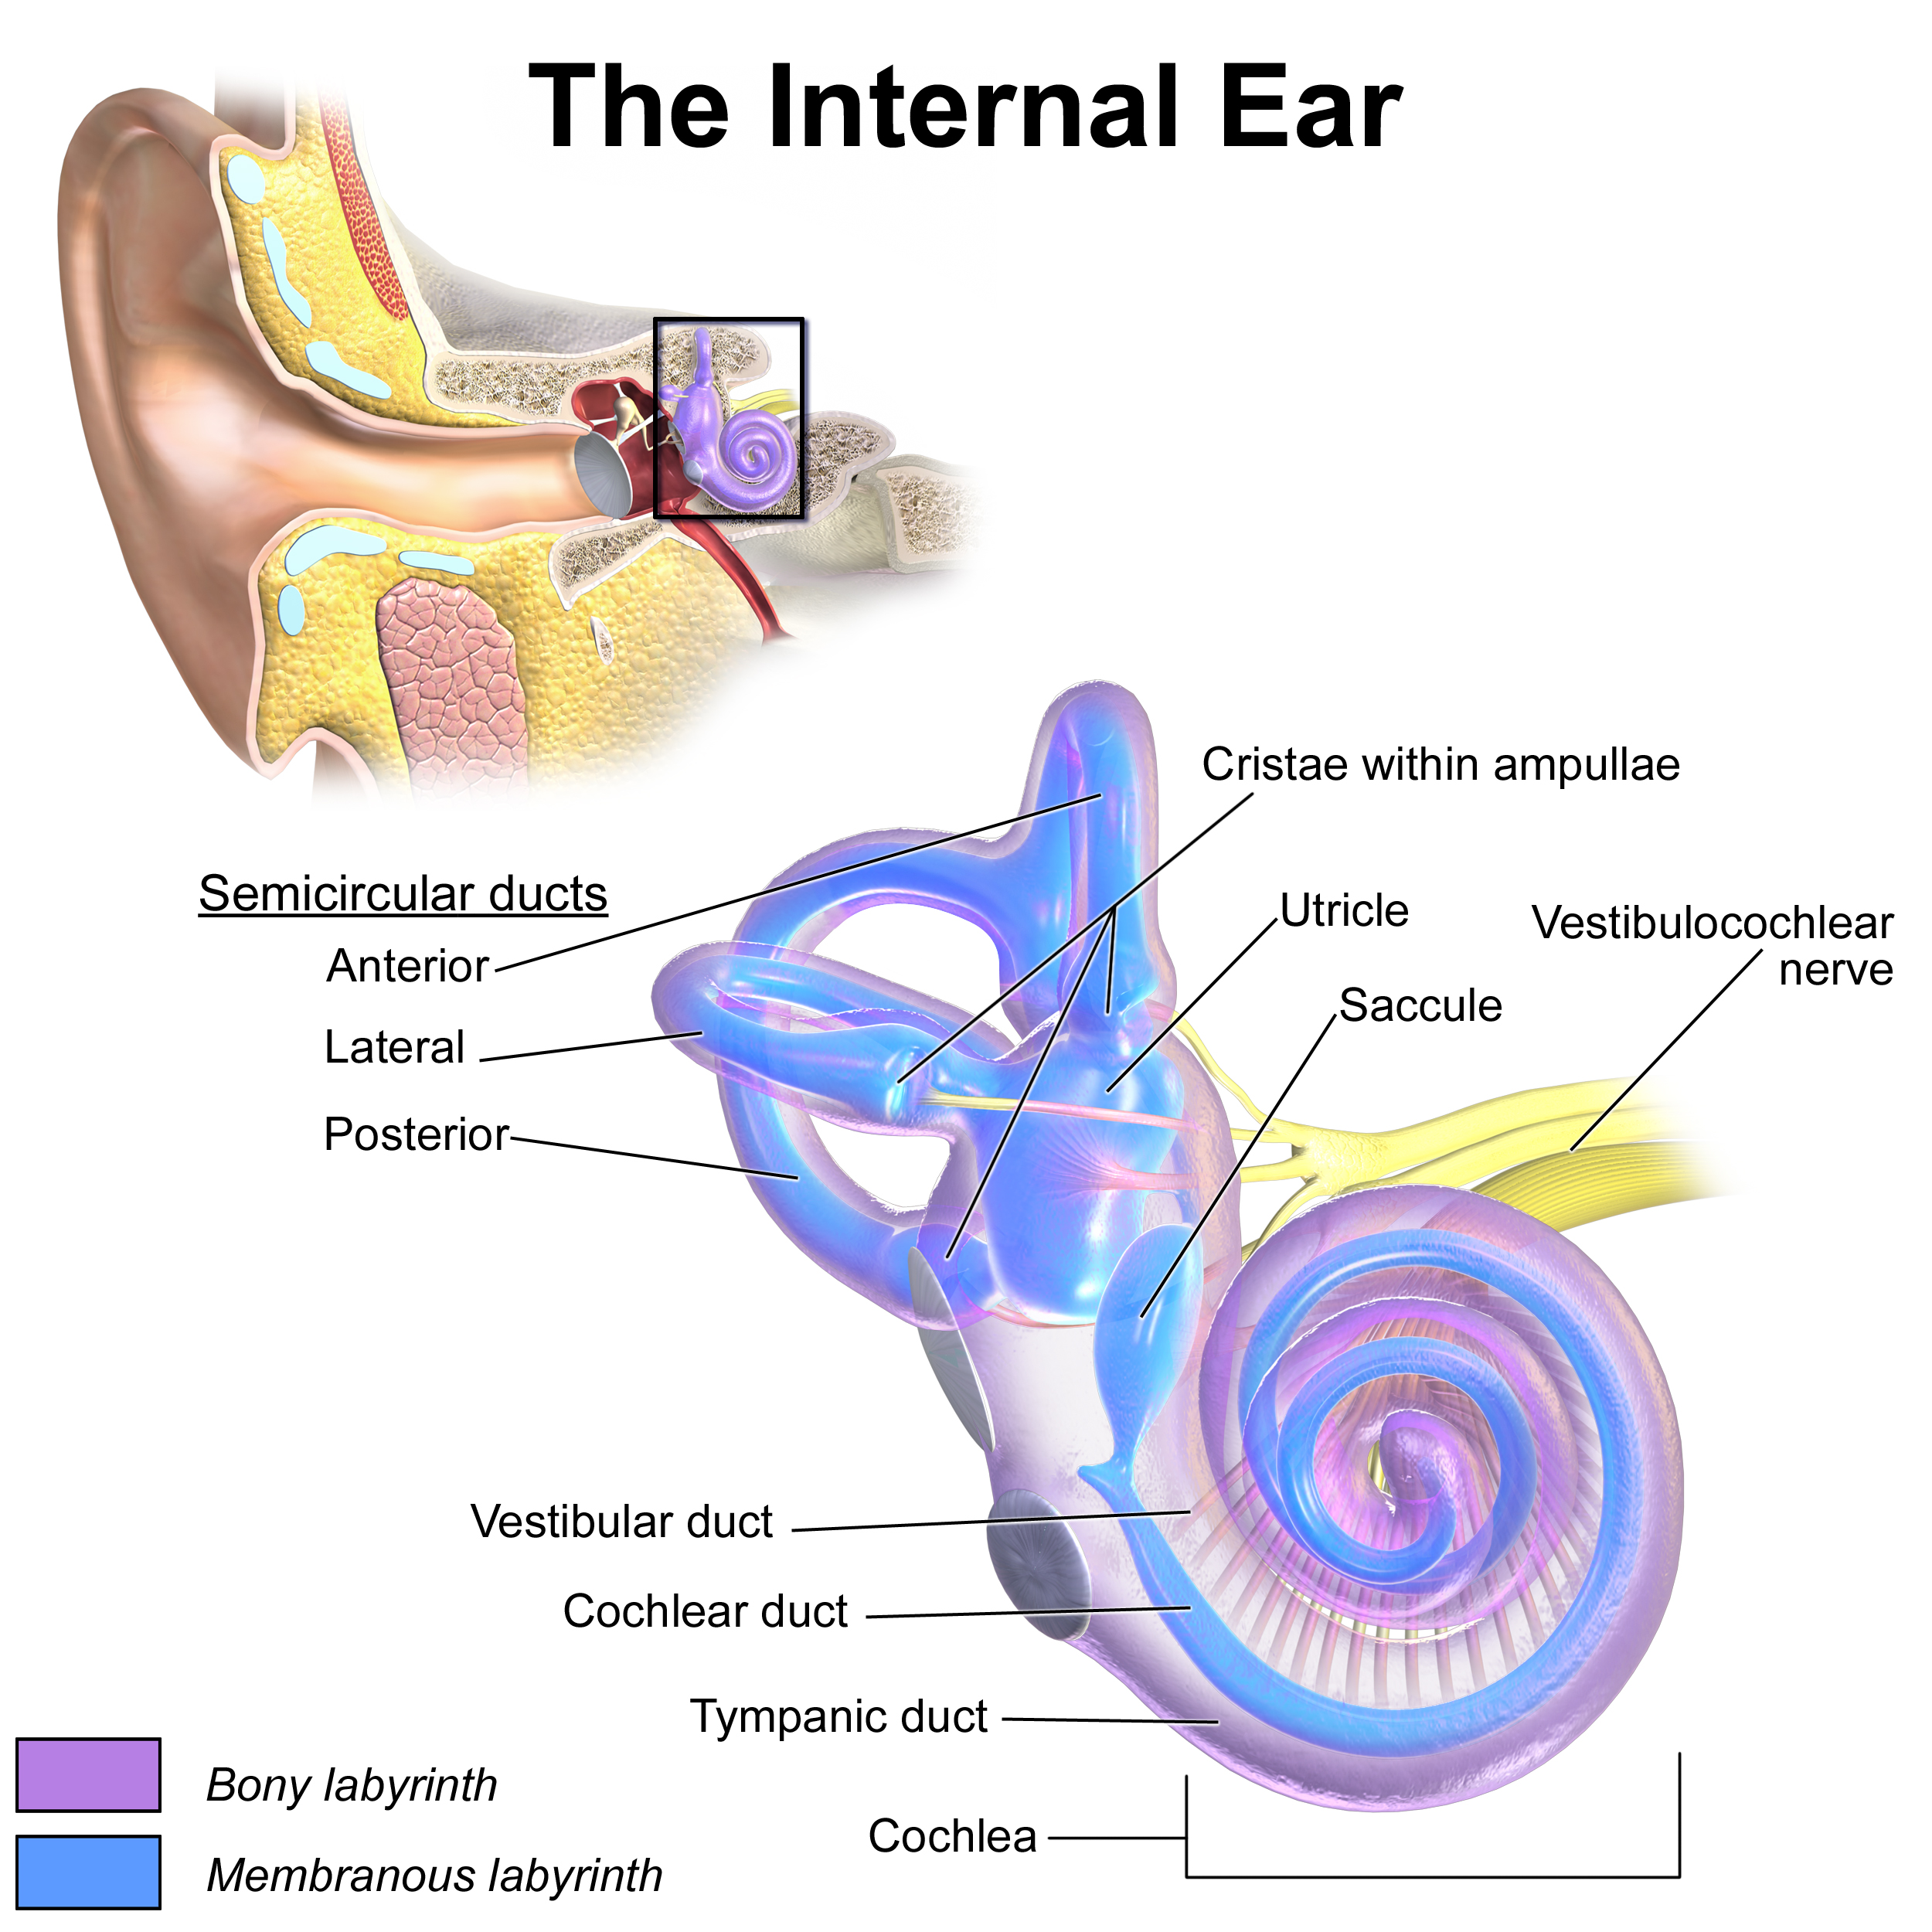 sound-design-live-noise-induced-hearing-loss-hearing-aids-jovie-havard-strzelecki-internal-ear